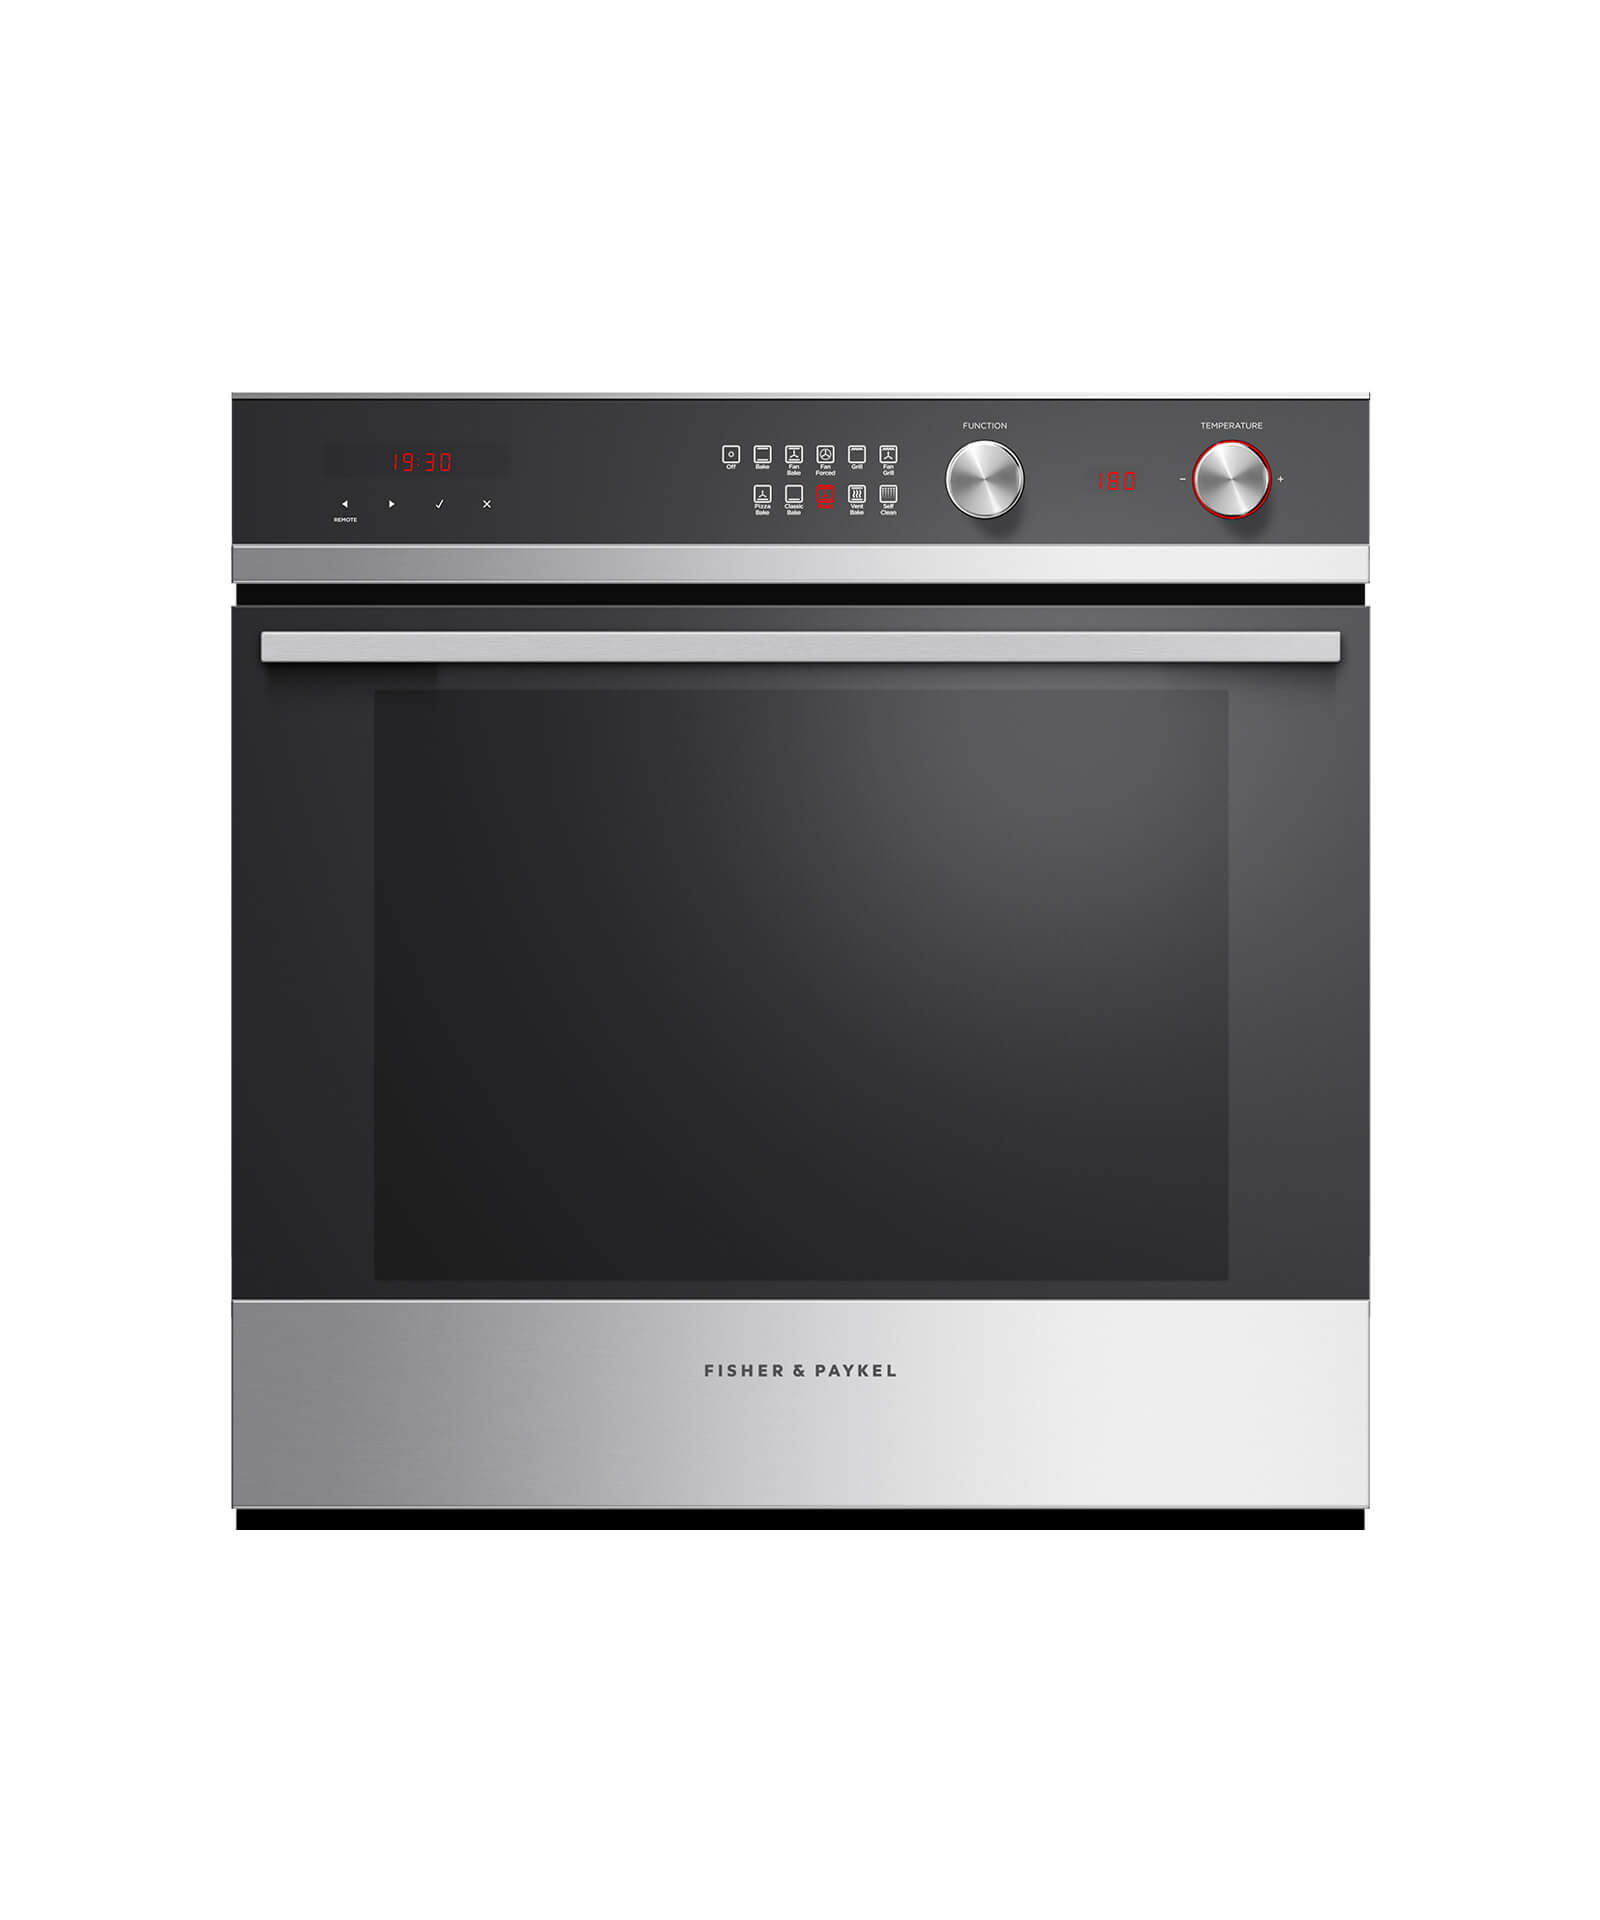 OB60SD10PX1 - 60cm 10 Function Built-in Oven - 85L Pyrolytic - 81750